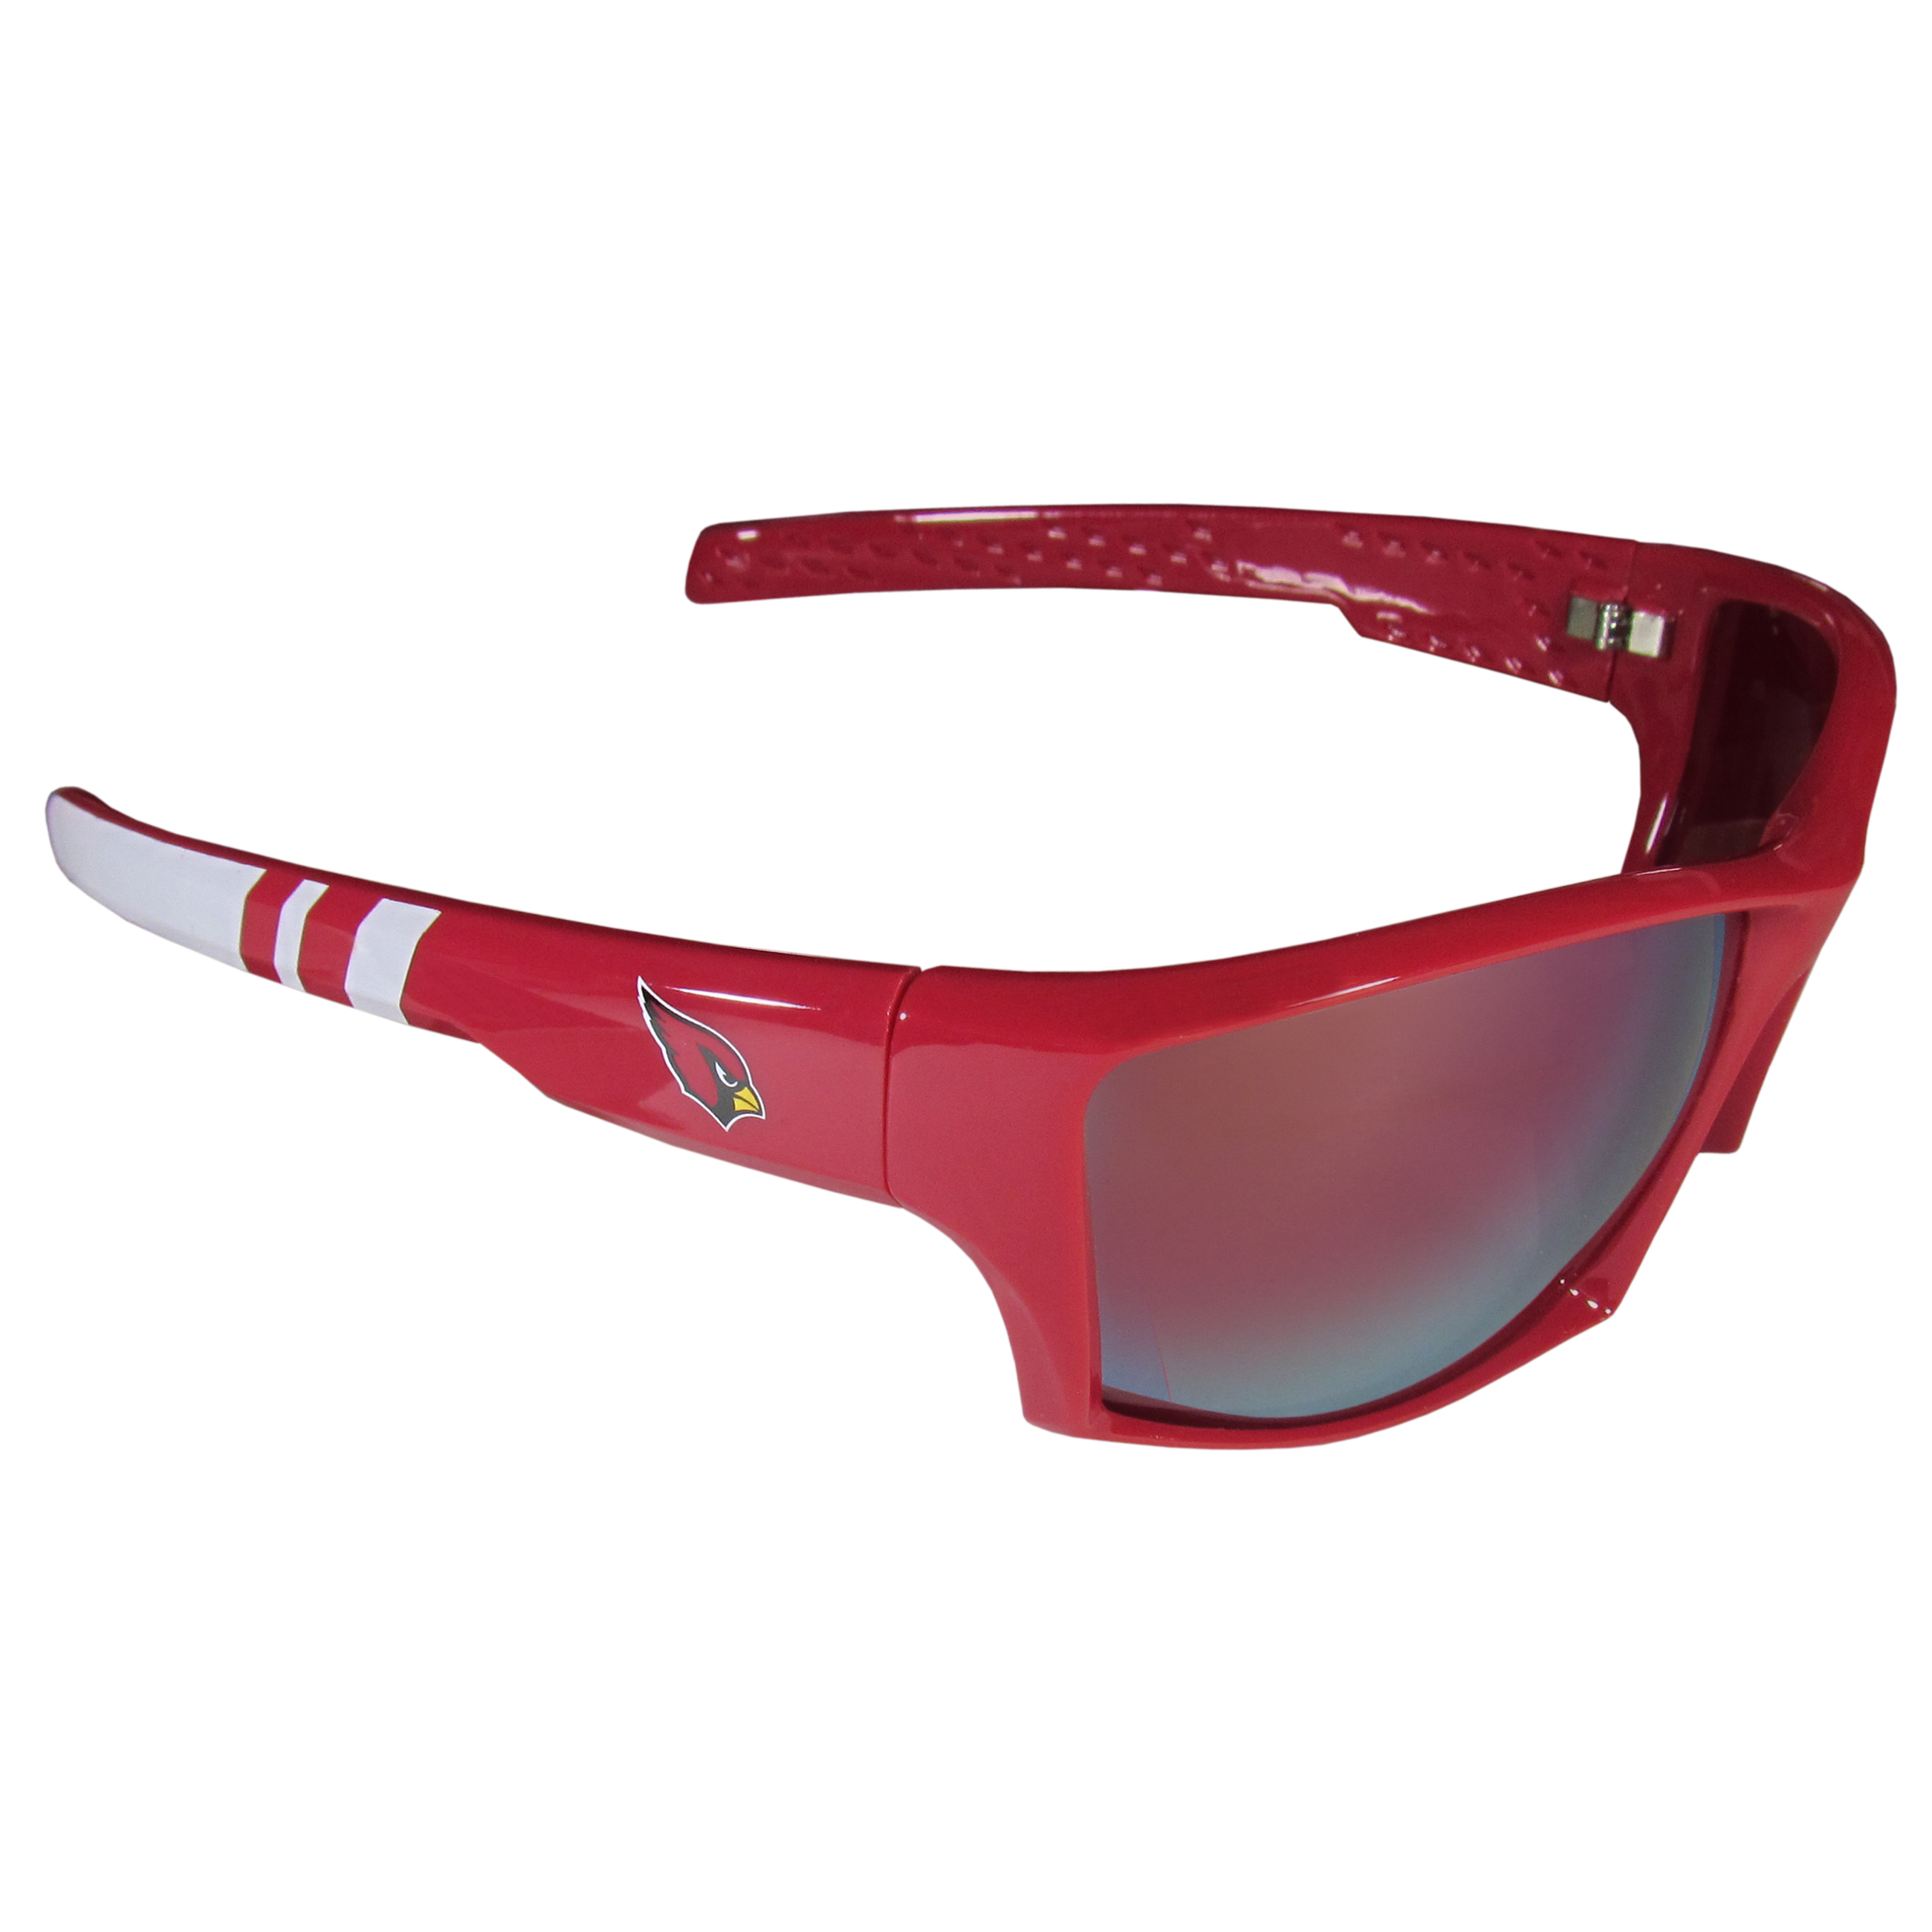 Arizona Cardinals Edge Wrap Sunglasses - Be an icon of edgy style while you're in the stadium cheering your Arizona Cardinals to victory with our polarized wrap sunglasses that feature 100% UVA/UVB rating for maximum UV protection. The light-weight frames are built to last with flex hinges for comfort and durability which make them perfect for driving or just lounging by the pool. The colorful rubber grips on the arms of these fashionable sunglasses make them perfect for someone with an active lifestyle. Whether you are hiking, fishing, boating, running on the beach, golfing or playing your favorite sport these designer frames will set you apart. Our edge wrap sunglasses are true quality eyewear at an affordable price. The wrap style frames come with team colored stripes and team logos so you can show off your die-hard team pride while protecting your eyes from those bright sun rays.